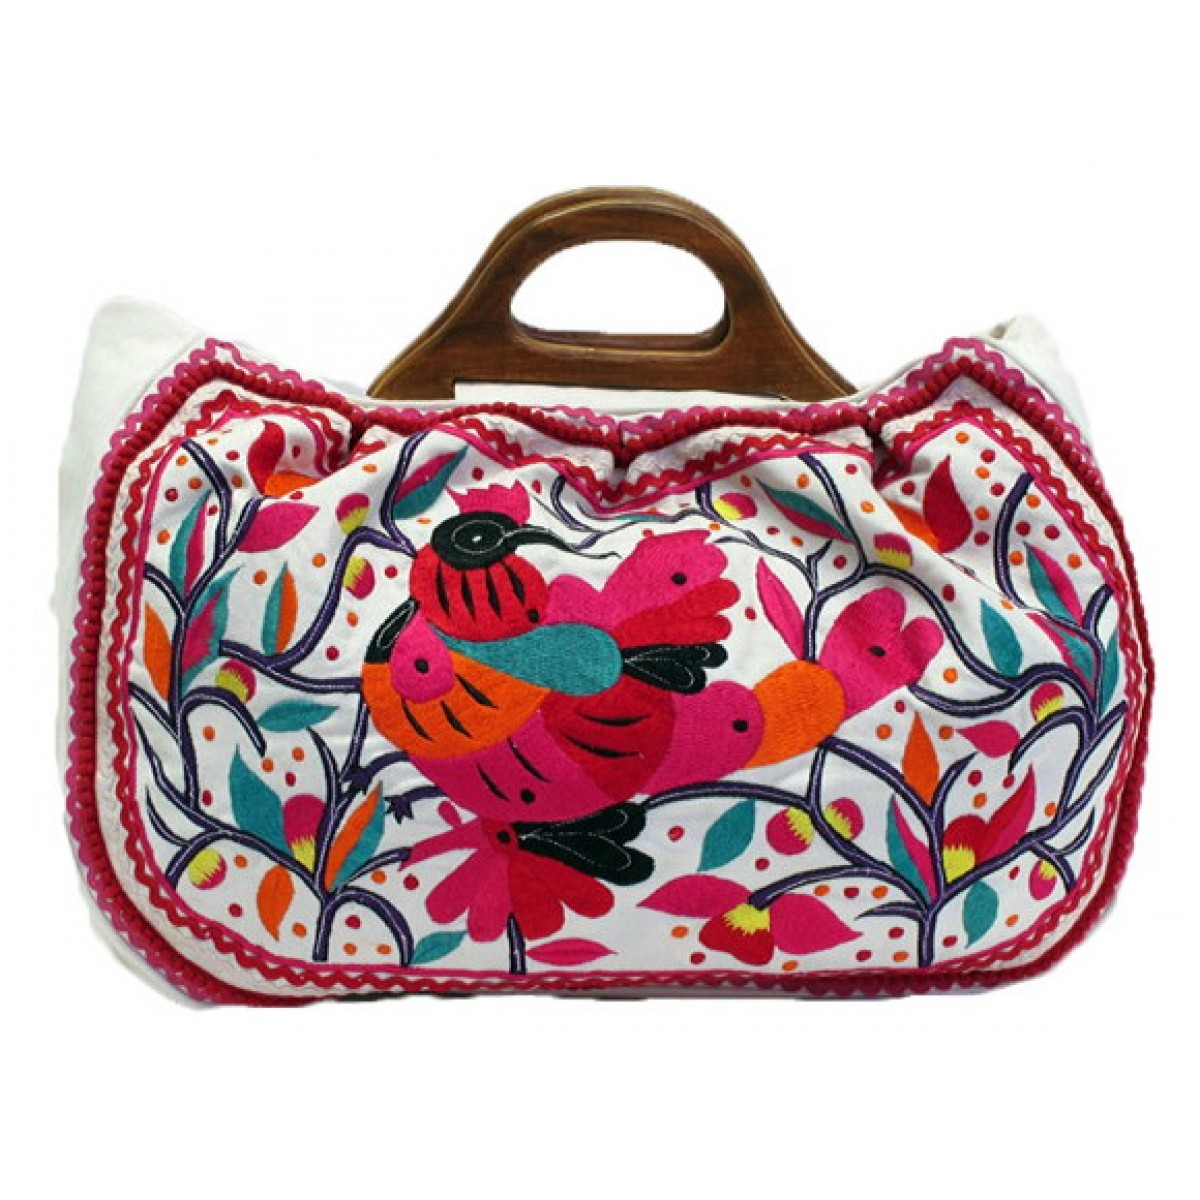 Embroidered Canvas Bag with Wooden Handle